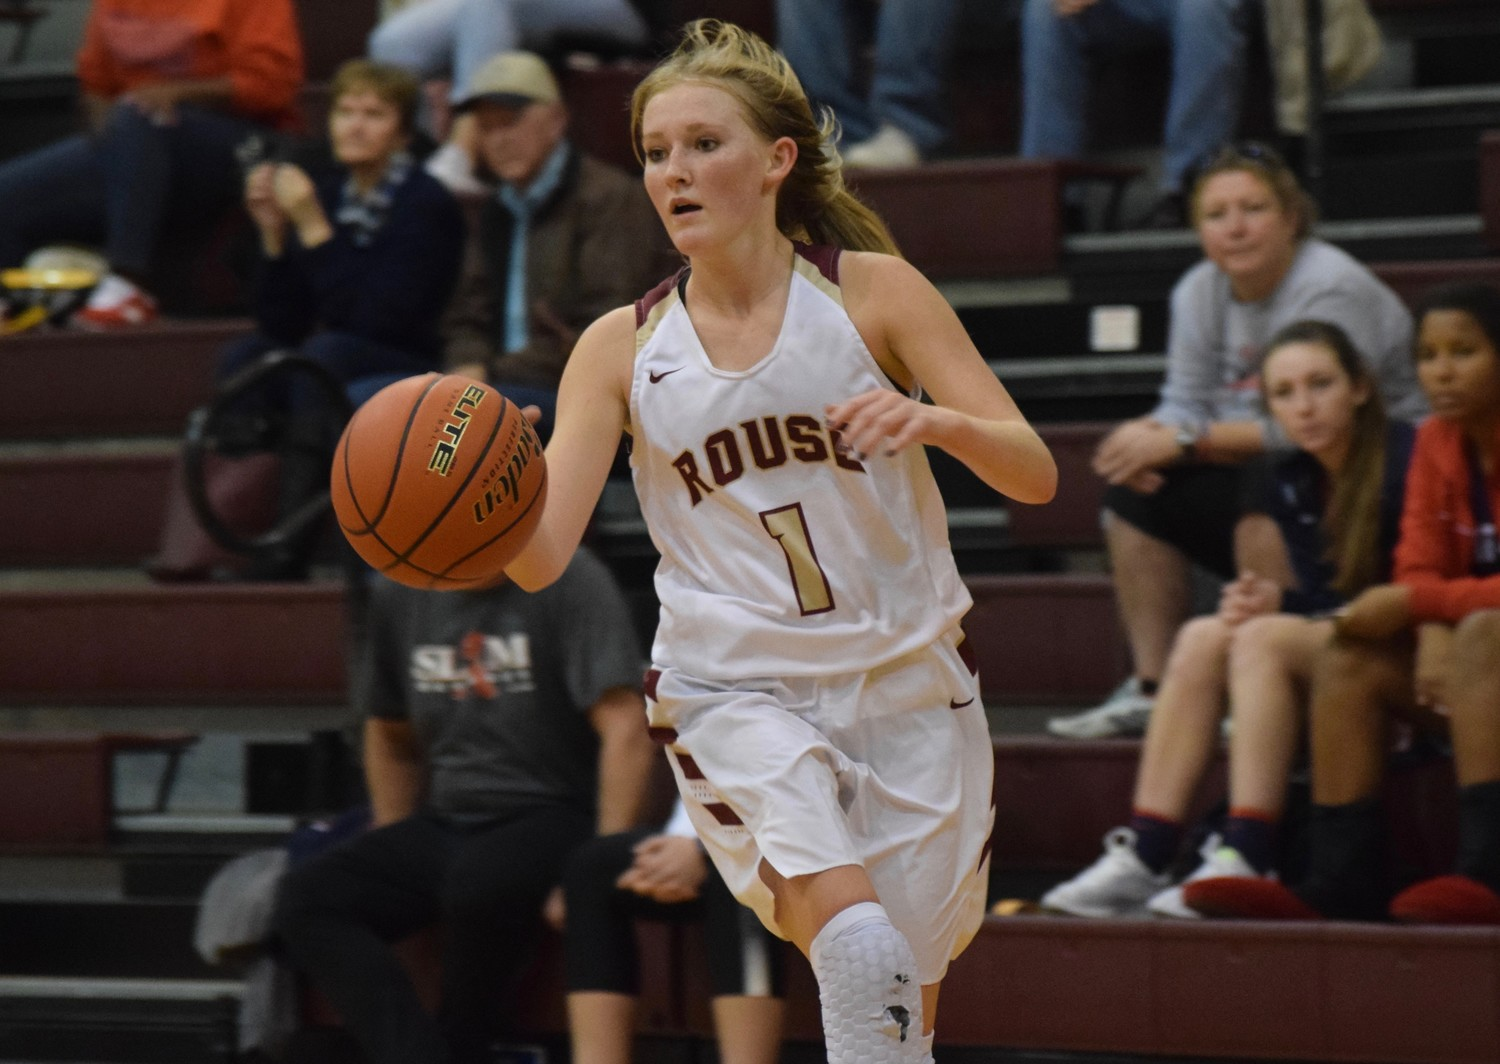 Brittney Martin and Rouse beat Tomball Memorial 59-39 in the first round of the playoffs Tuesday night. The No. 20 Lady Raiders will face Ennis in the area round on Friday.